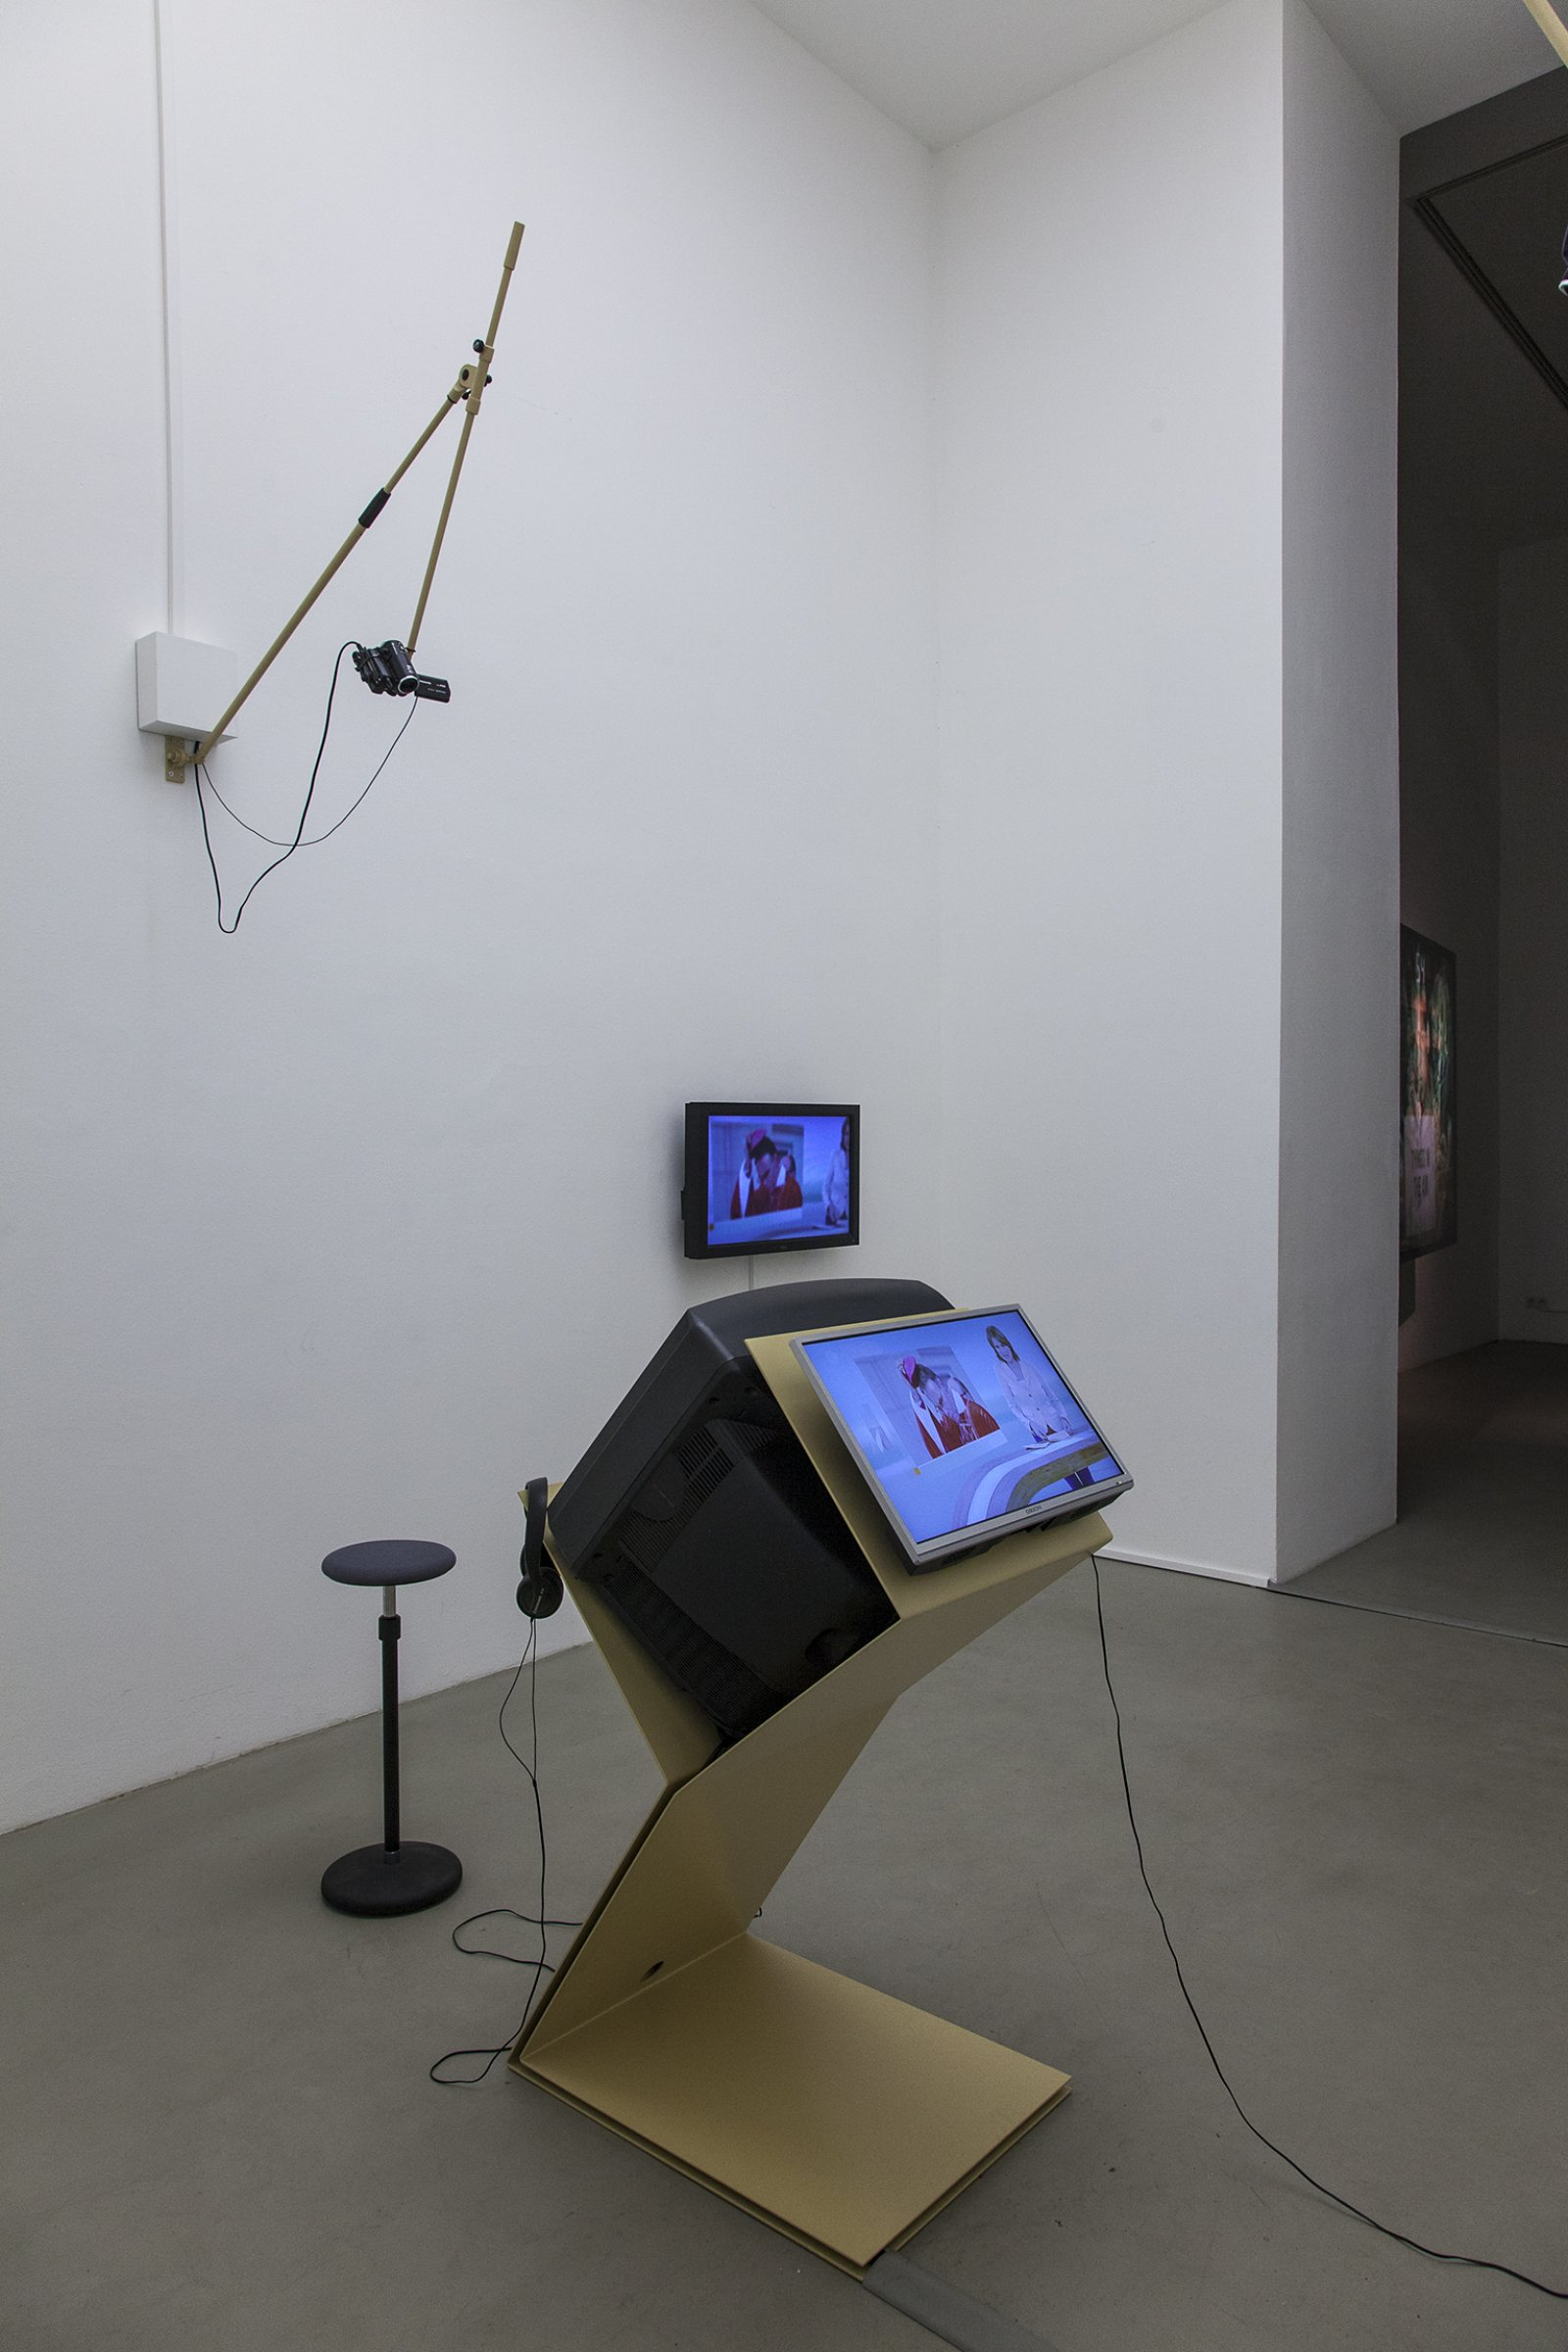 Judy Radul, A CONTAINER CONTAINING NOT ONE TV, 2013, mixed media, dimensions variable. Installation view, ThisisTelevision,Daadgalerie,Berlin,Germany, 2013 by Judy Radul